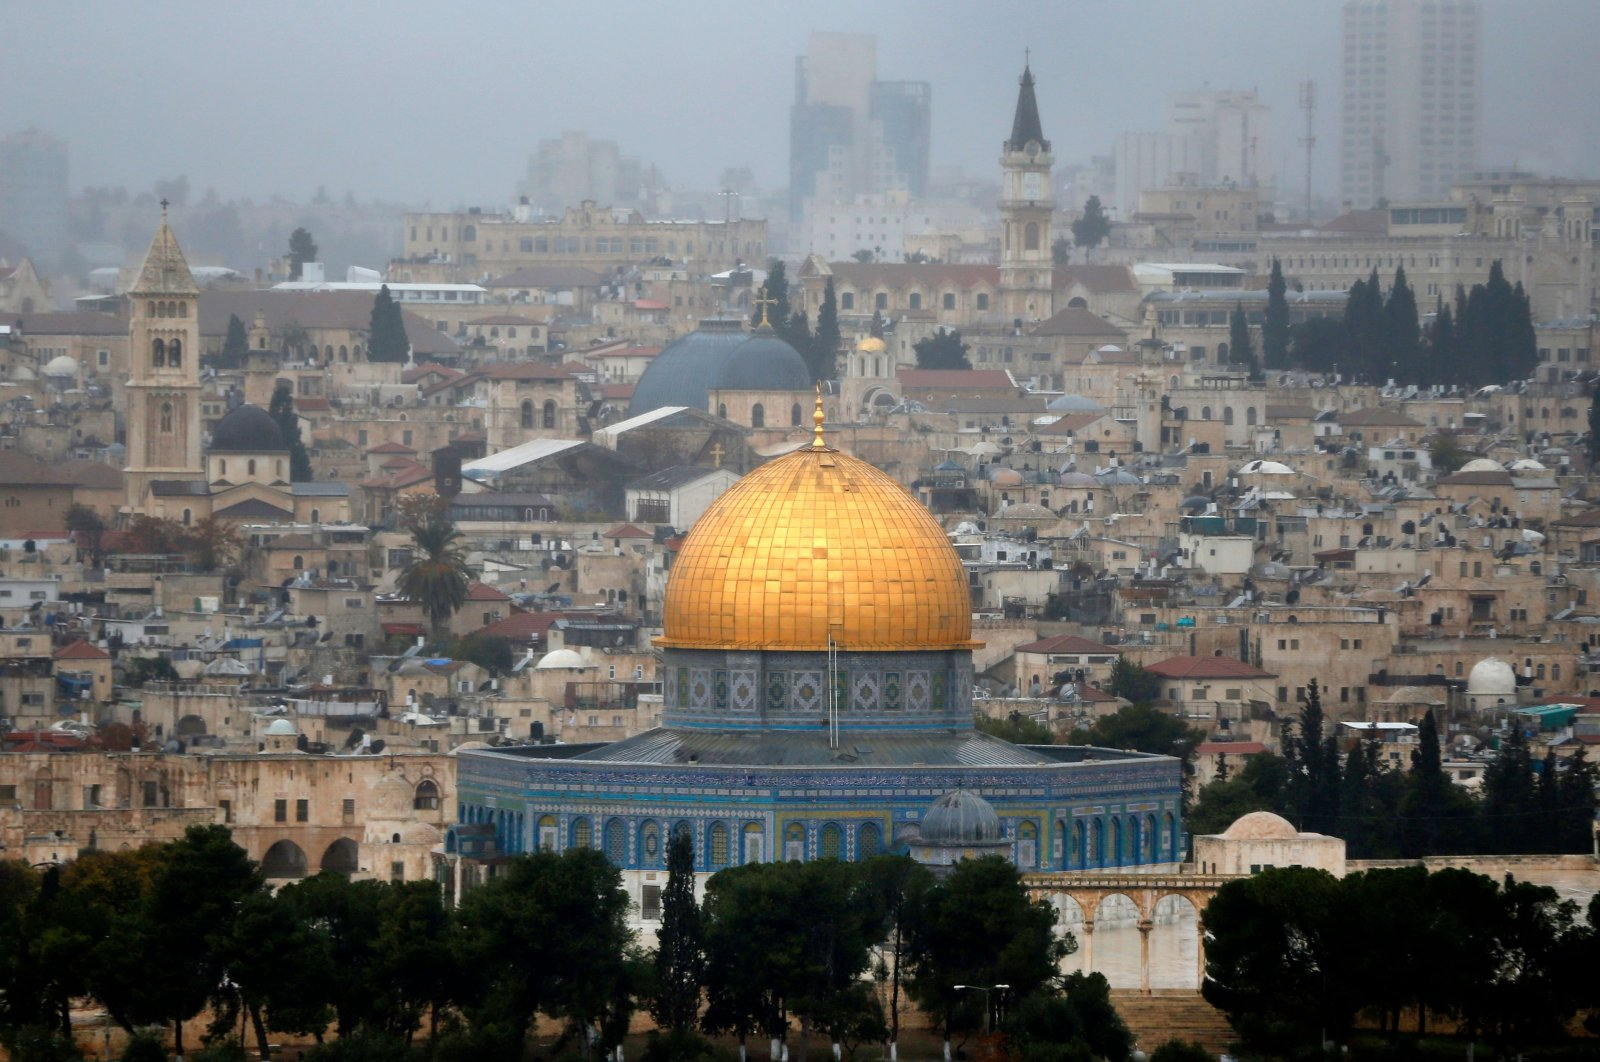 The old city of Jerusalem with the Dome of the Rock in the center, Israel, Dec. 6, 2017. (AFP Photo)